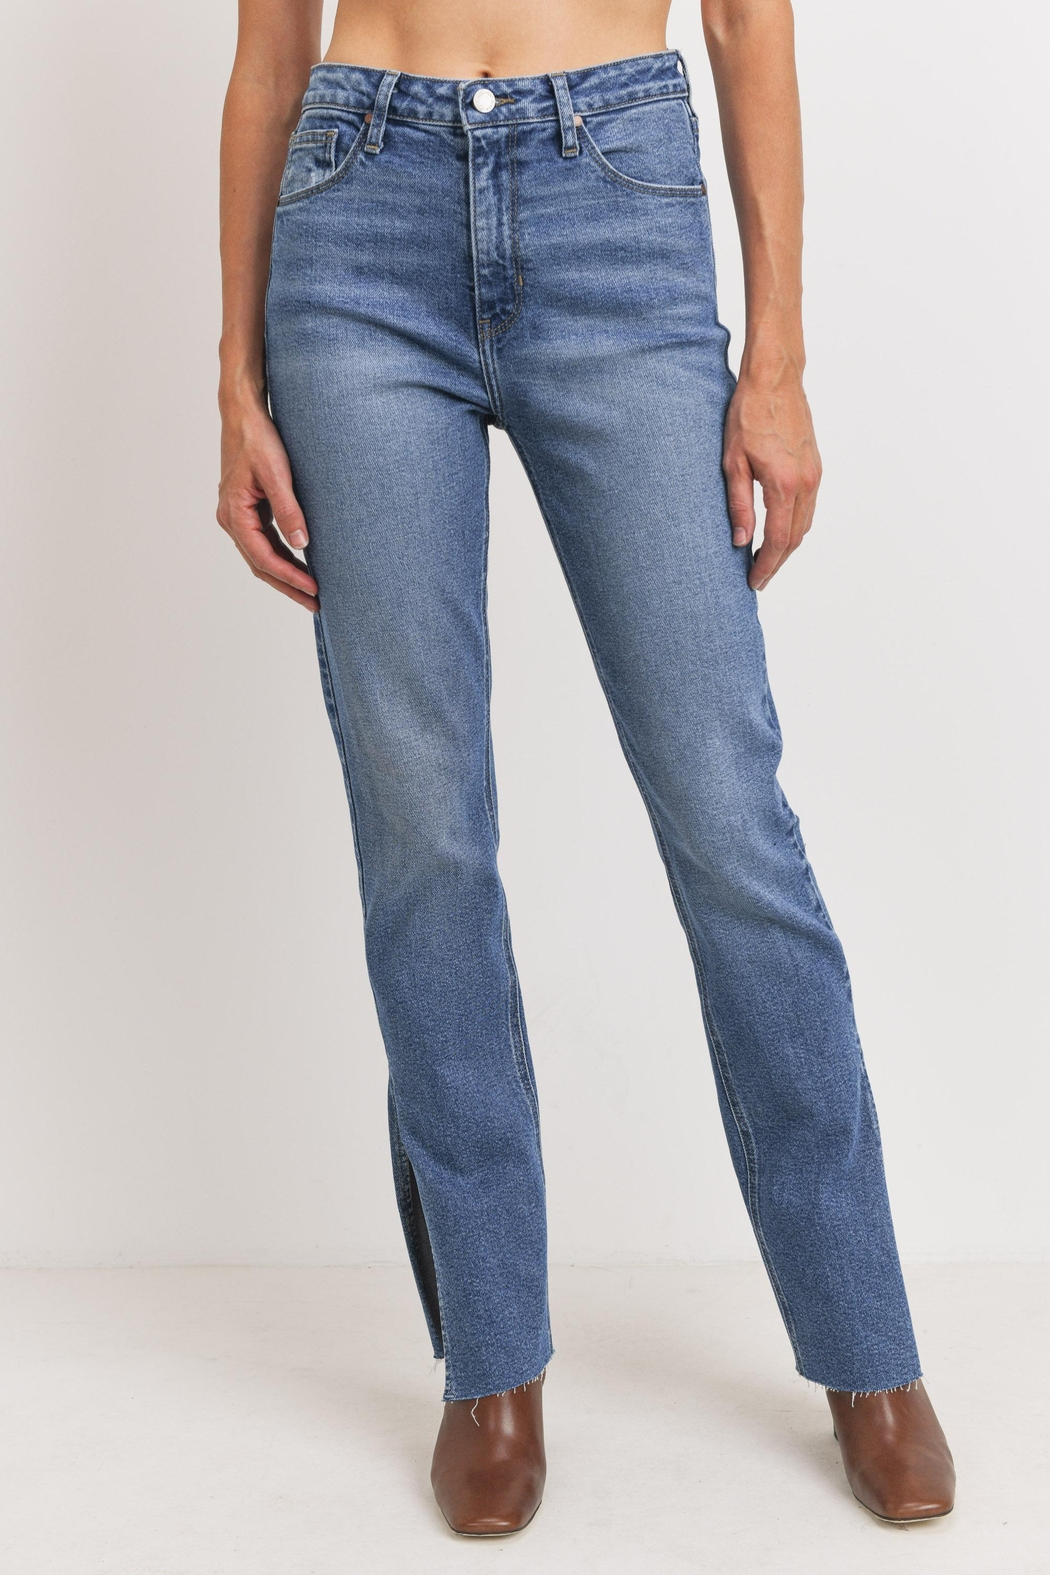 Just Panmaco Inc. Frayed Side Slit Jeans - Front Full Image